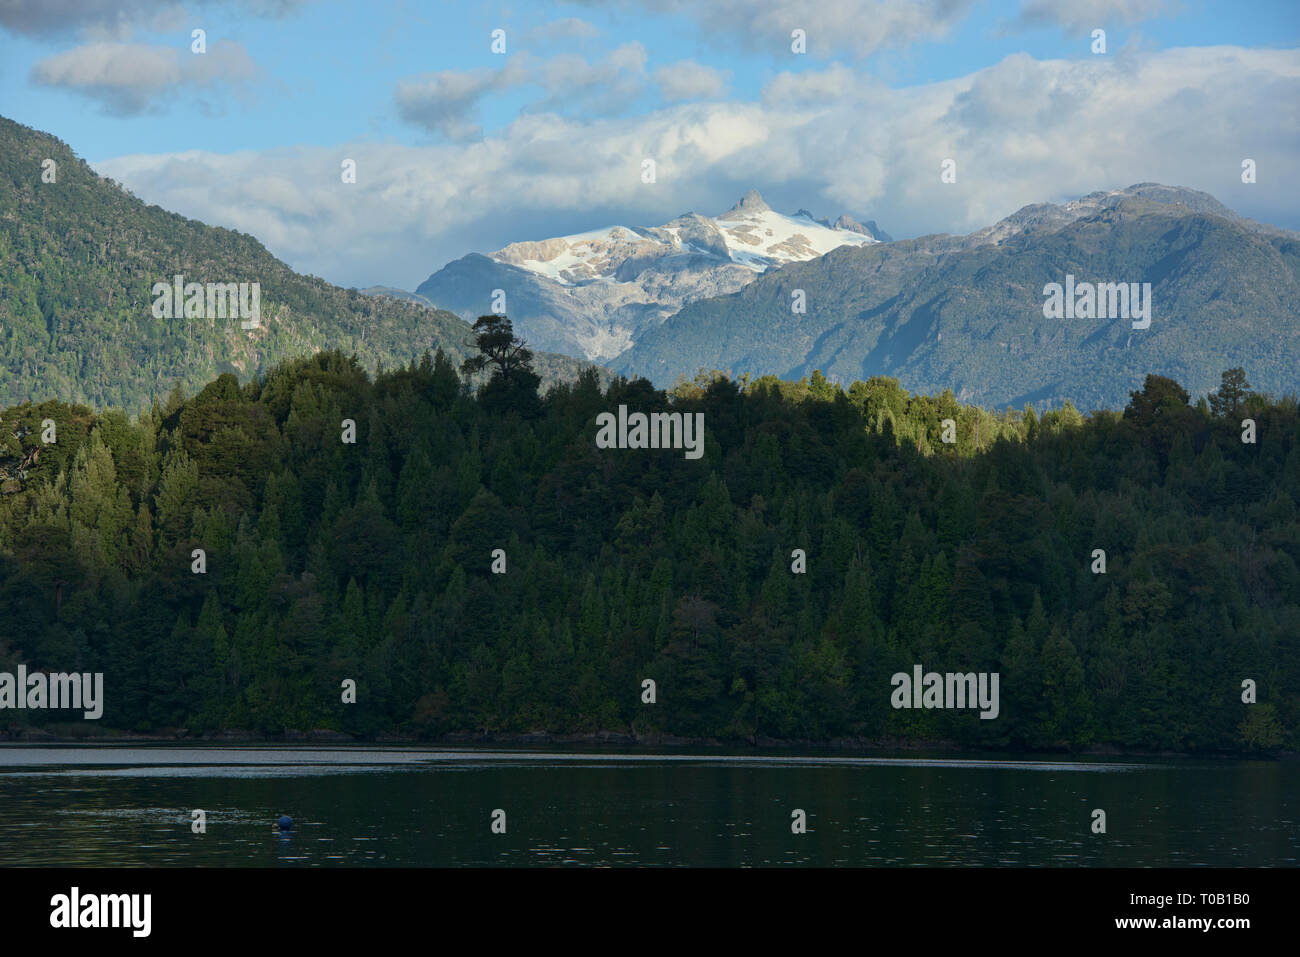 View of Nevado Queulat and Puyuhuapi fiord, Patagonia, Aysen, Chile - Stock Image